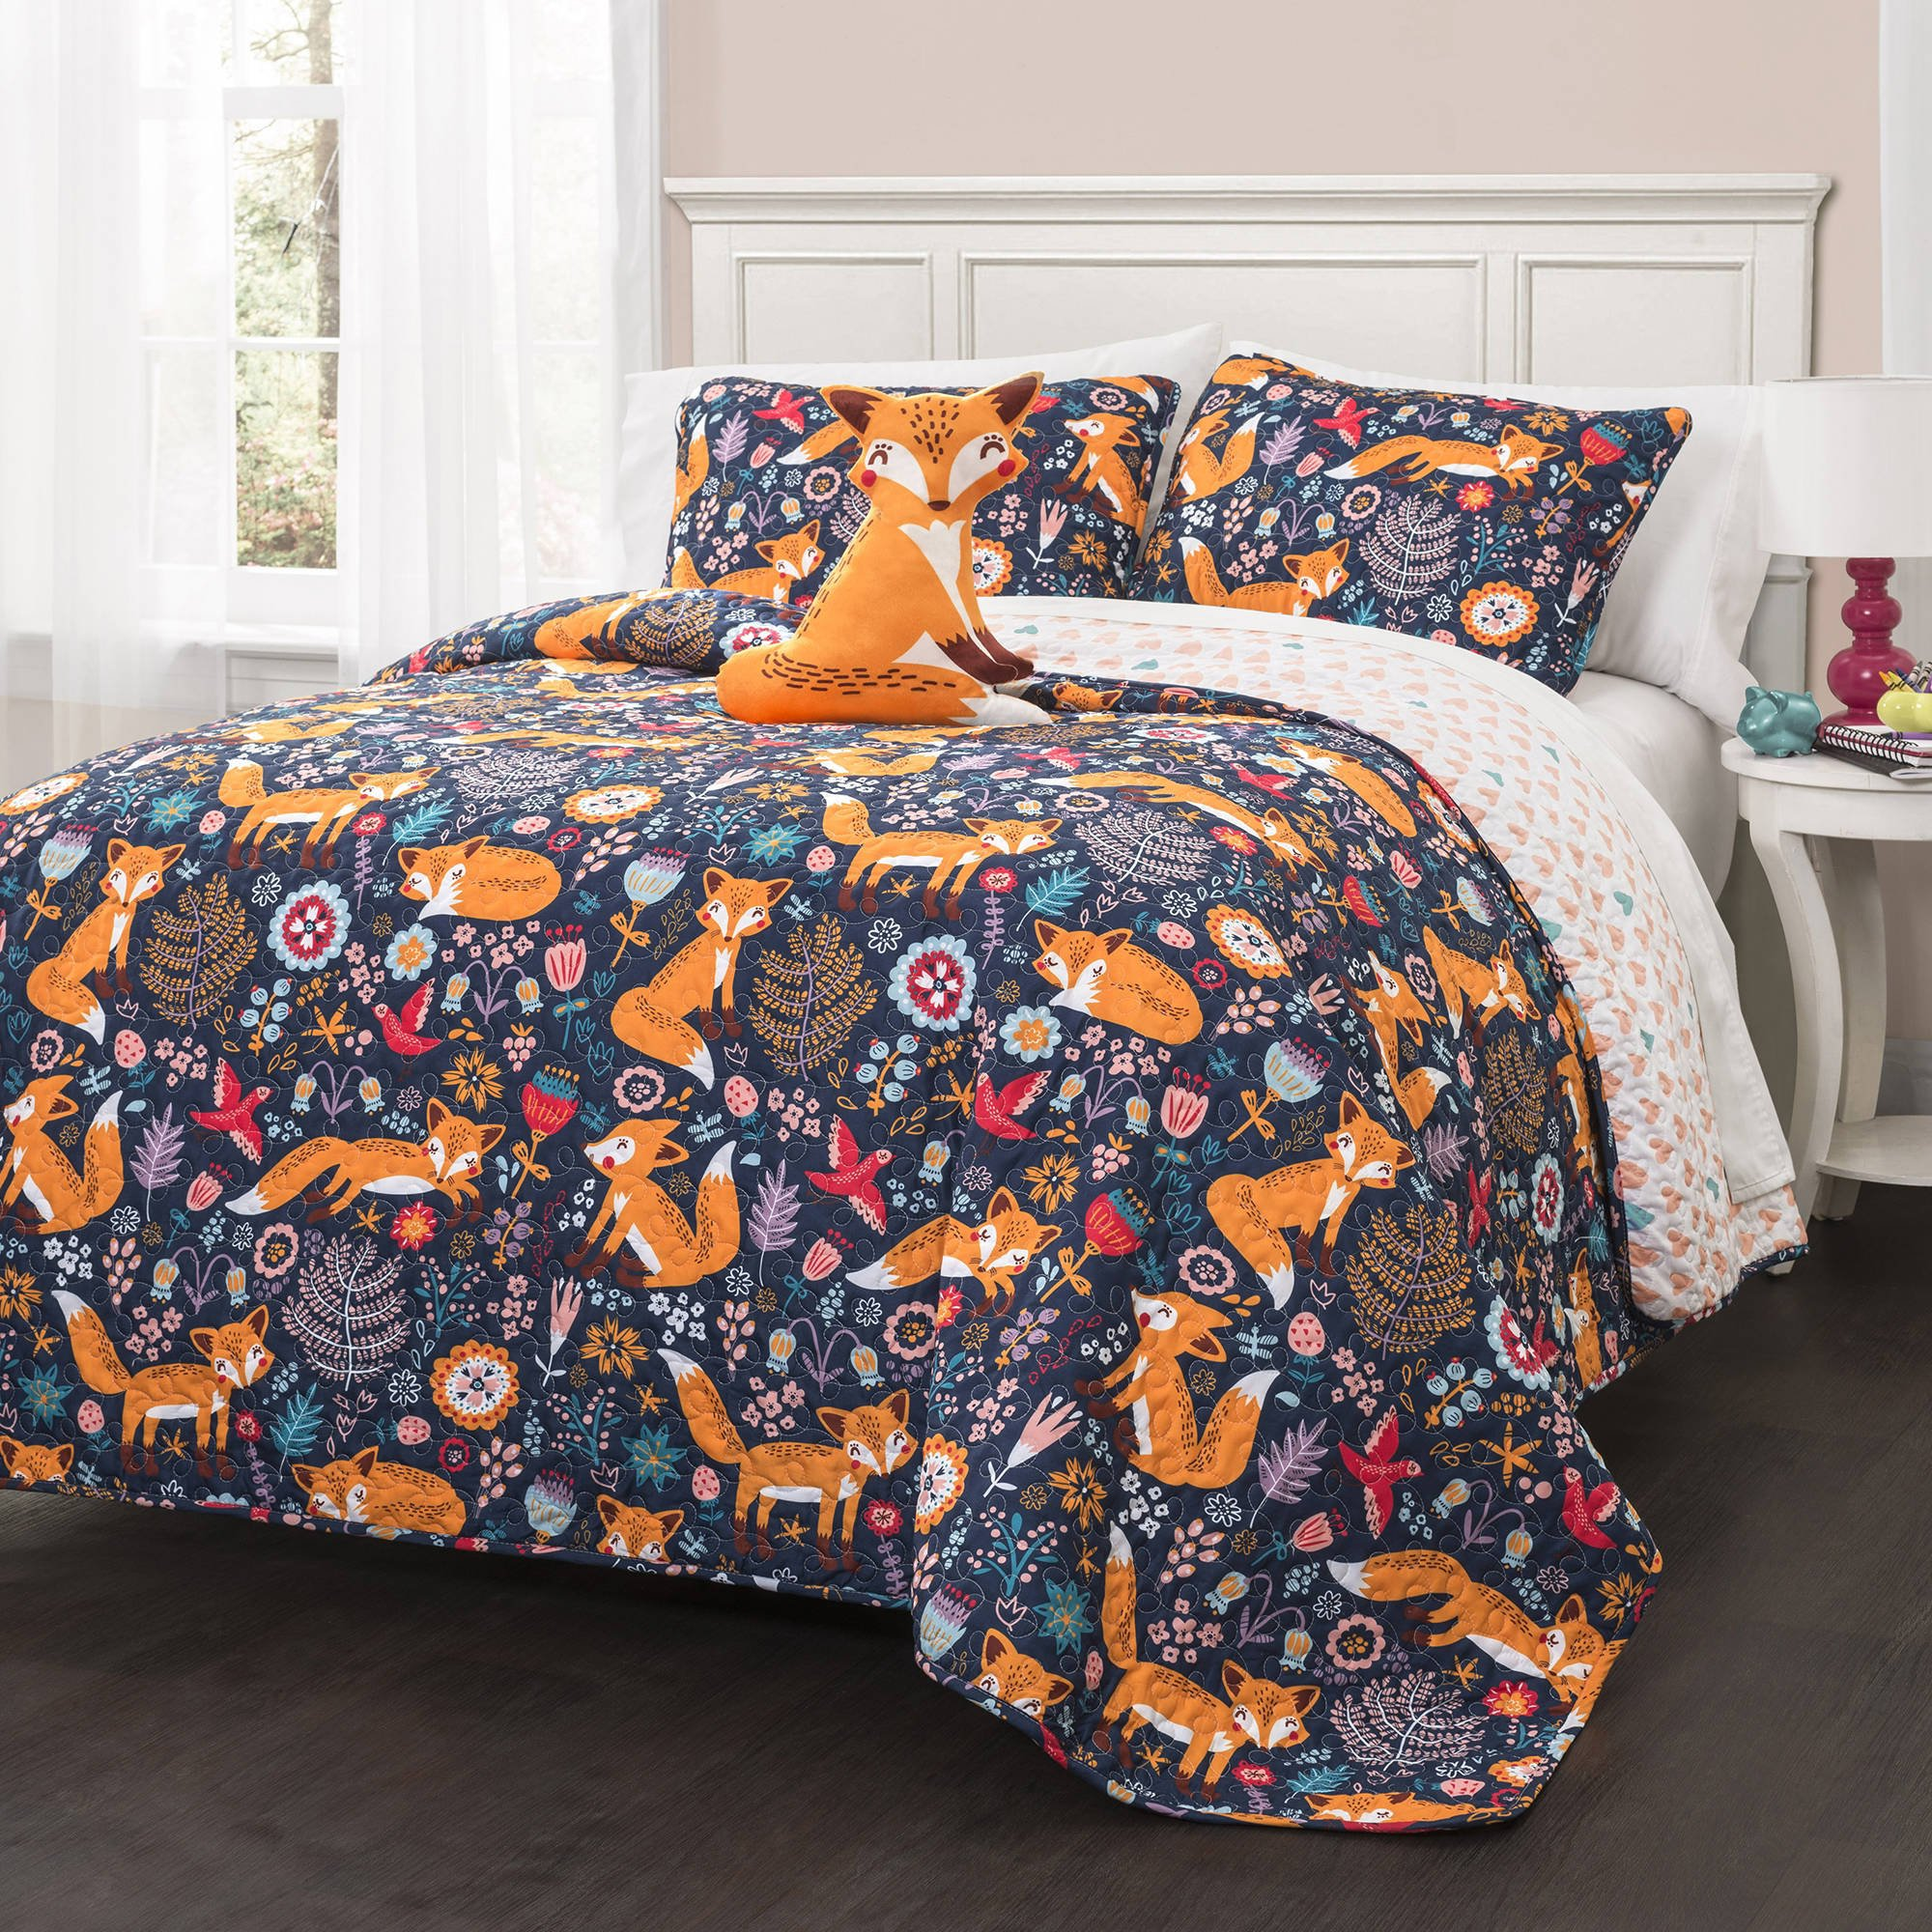 4 Piece Multi Color Pixie Fox Floral Quilt Full Queen Set, Navy Orange Red Animal Bird Print Flower Leaf Medallion Motif Boho Chic Vintage, Reversible Heart Shapes Kids Bedding Teen Bedroom, Polyester by OSVT